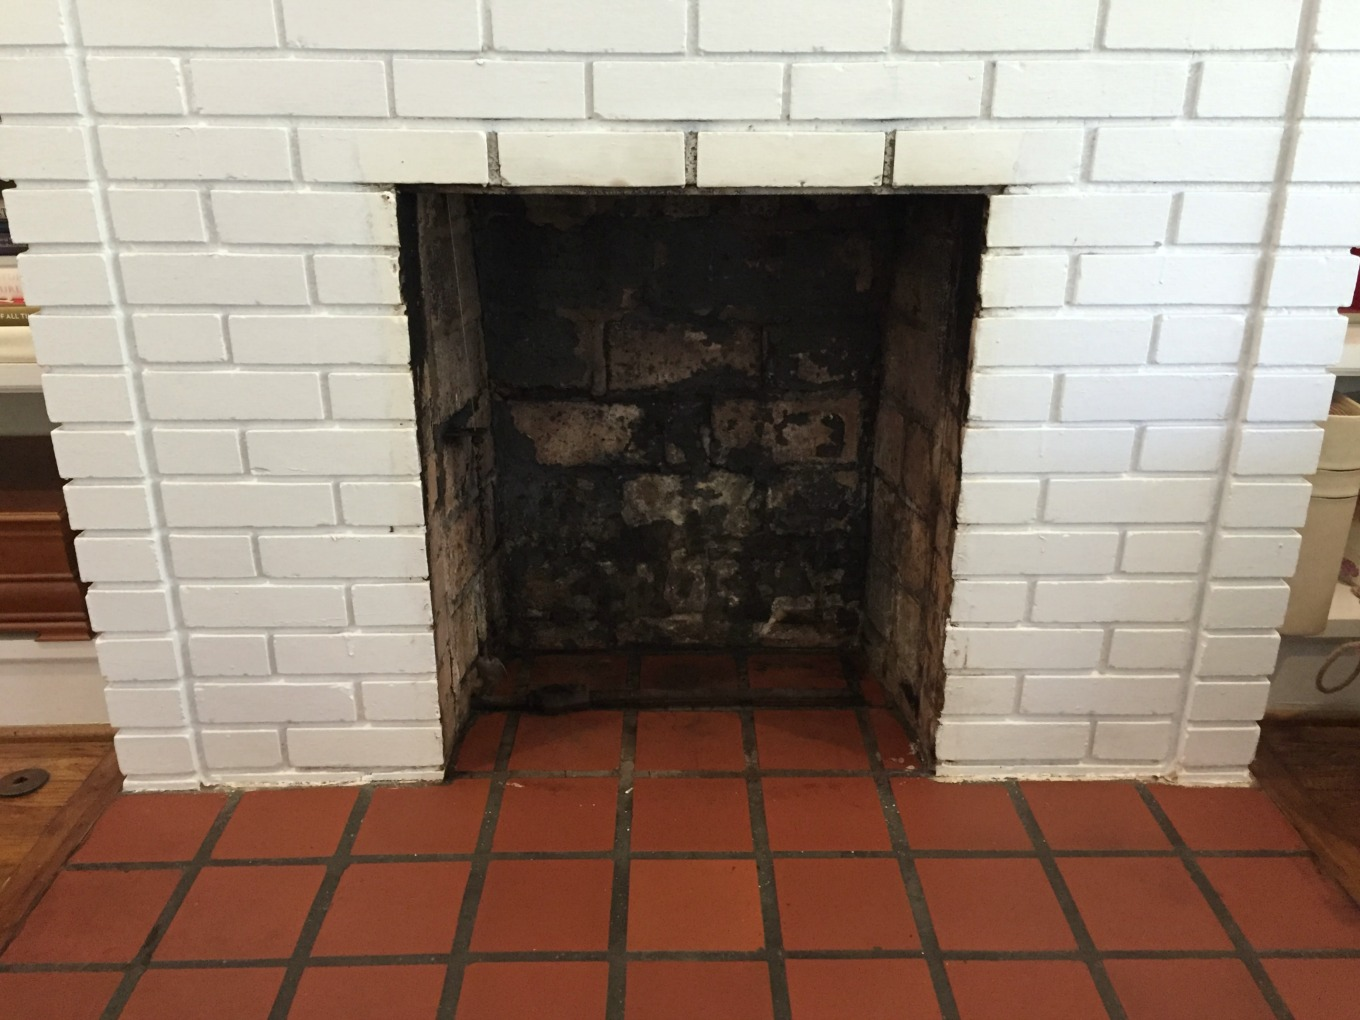 Cleaned fireplace firebox for fireplace makeover - thediybungalow.com